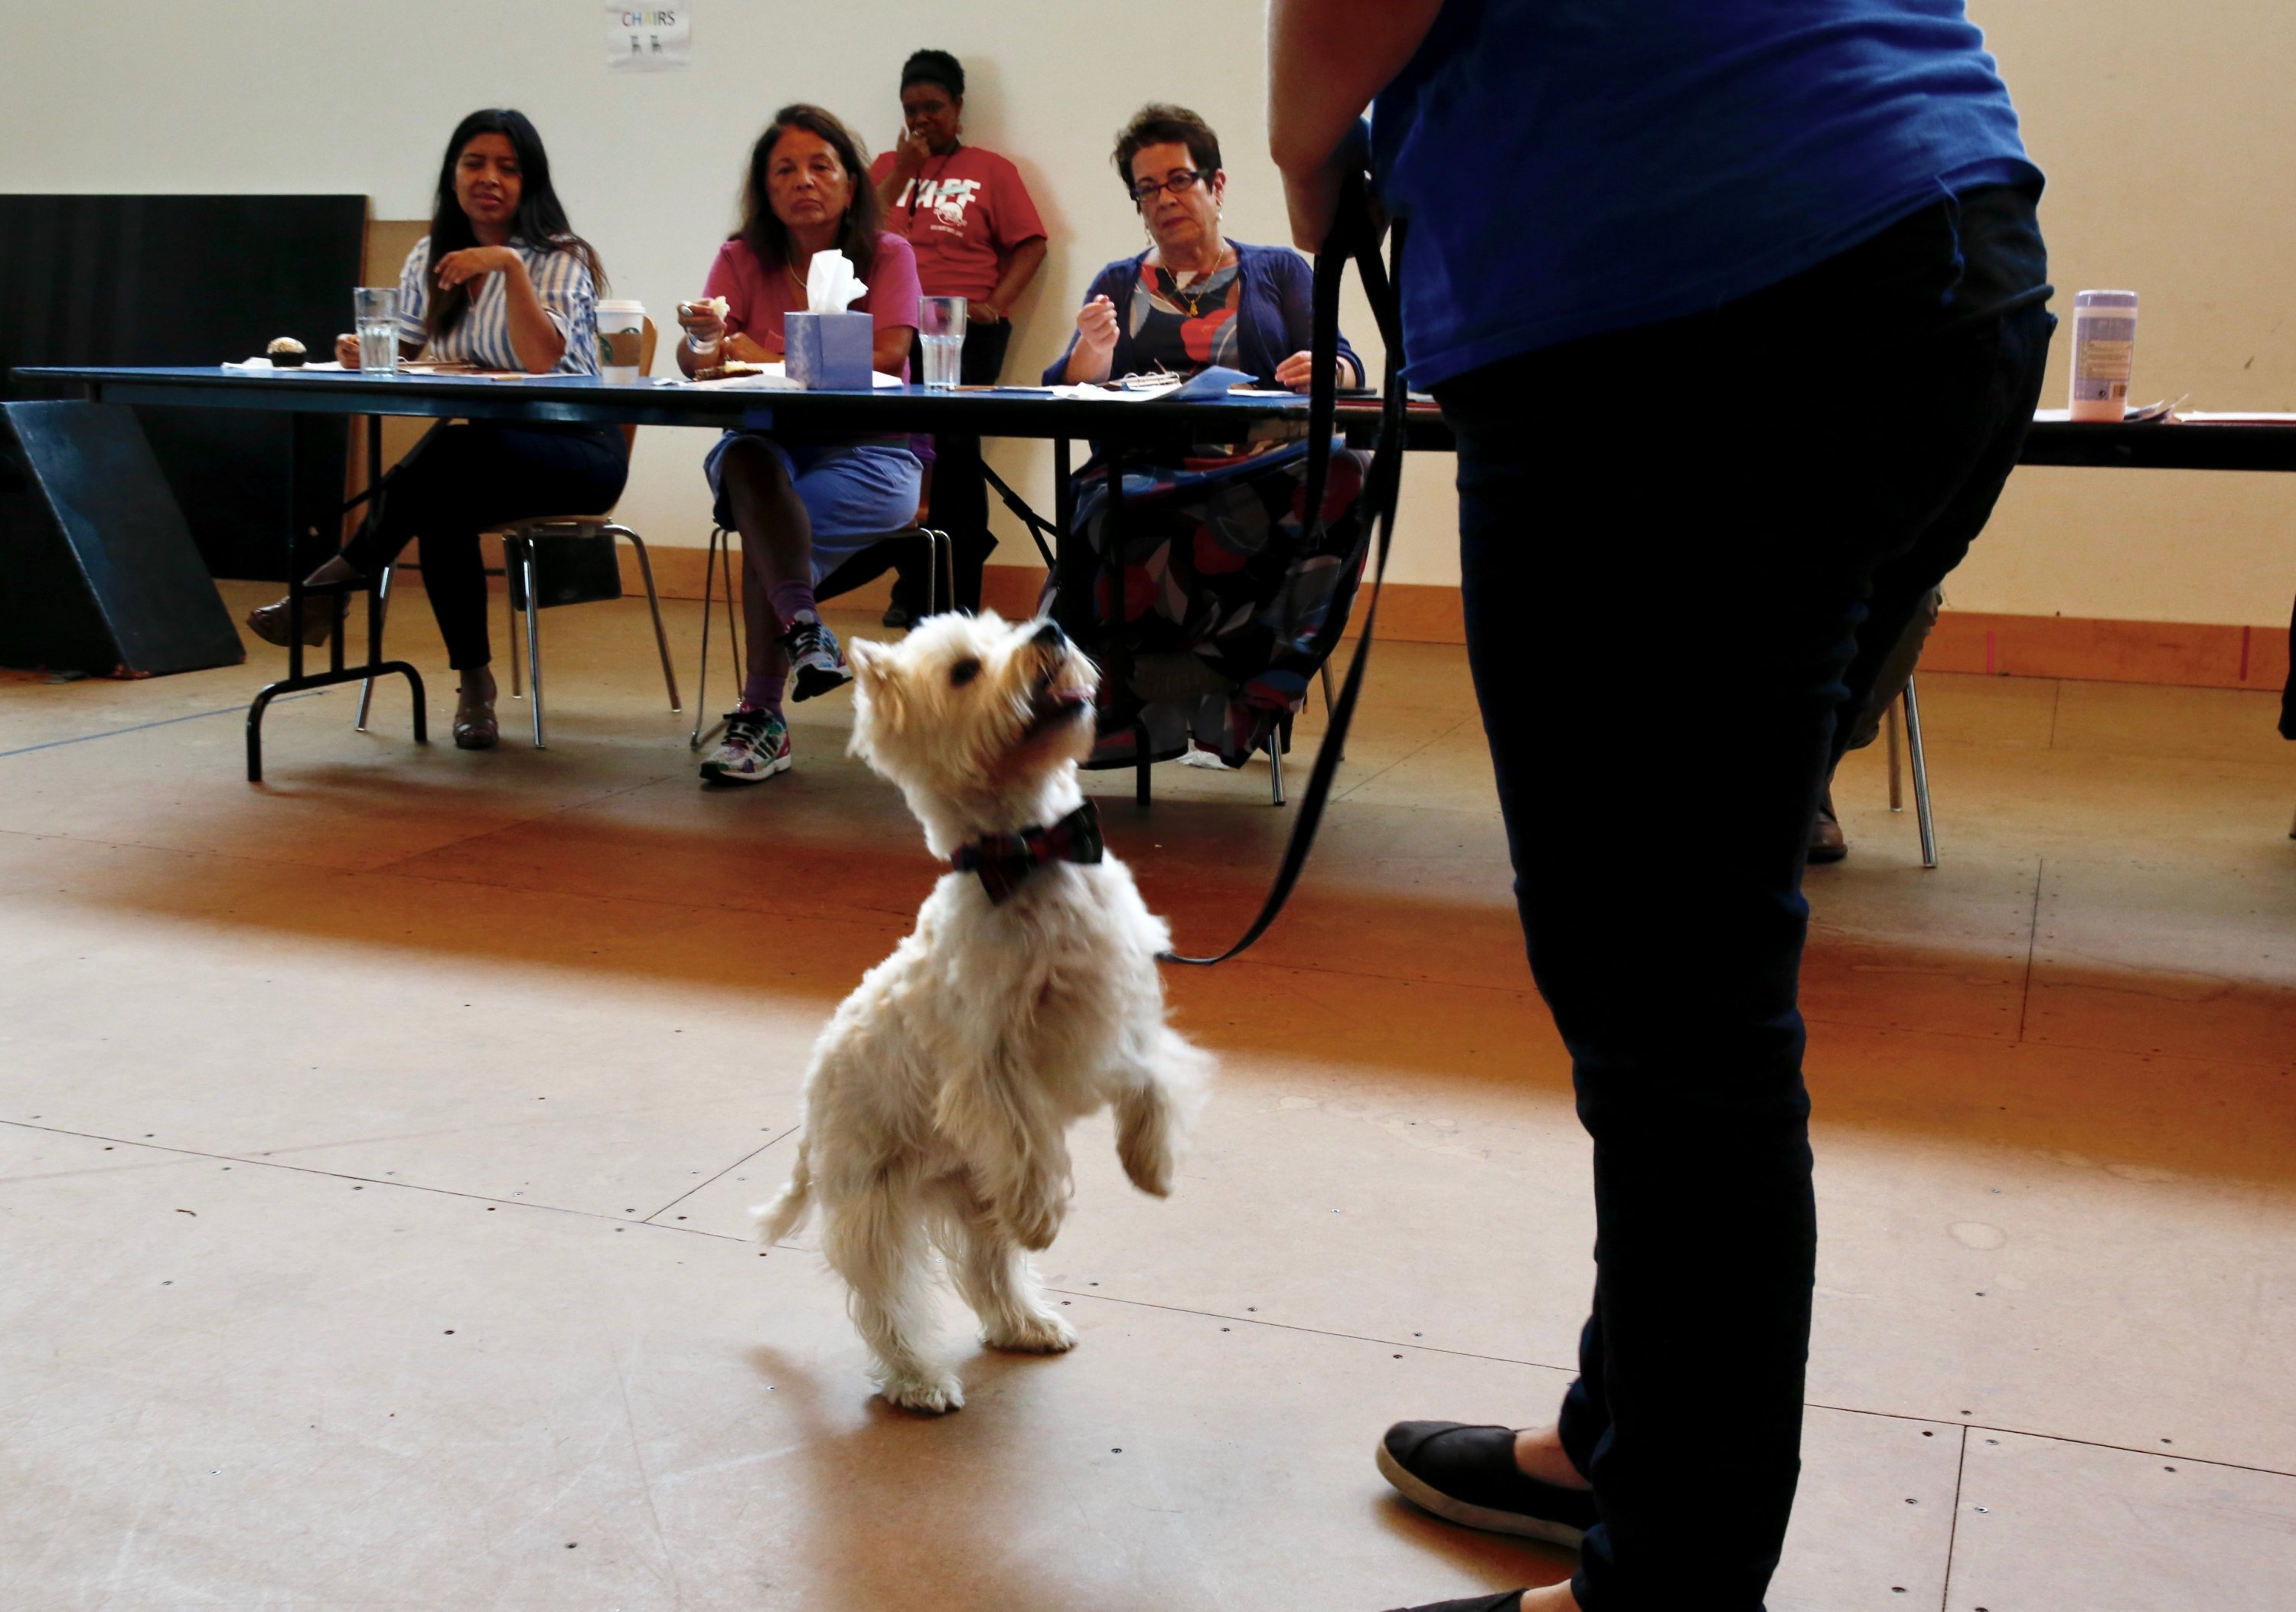 Charlie the Westie sported a bow tie during his audition. Here, he follows Valm's directions.